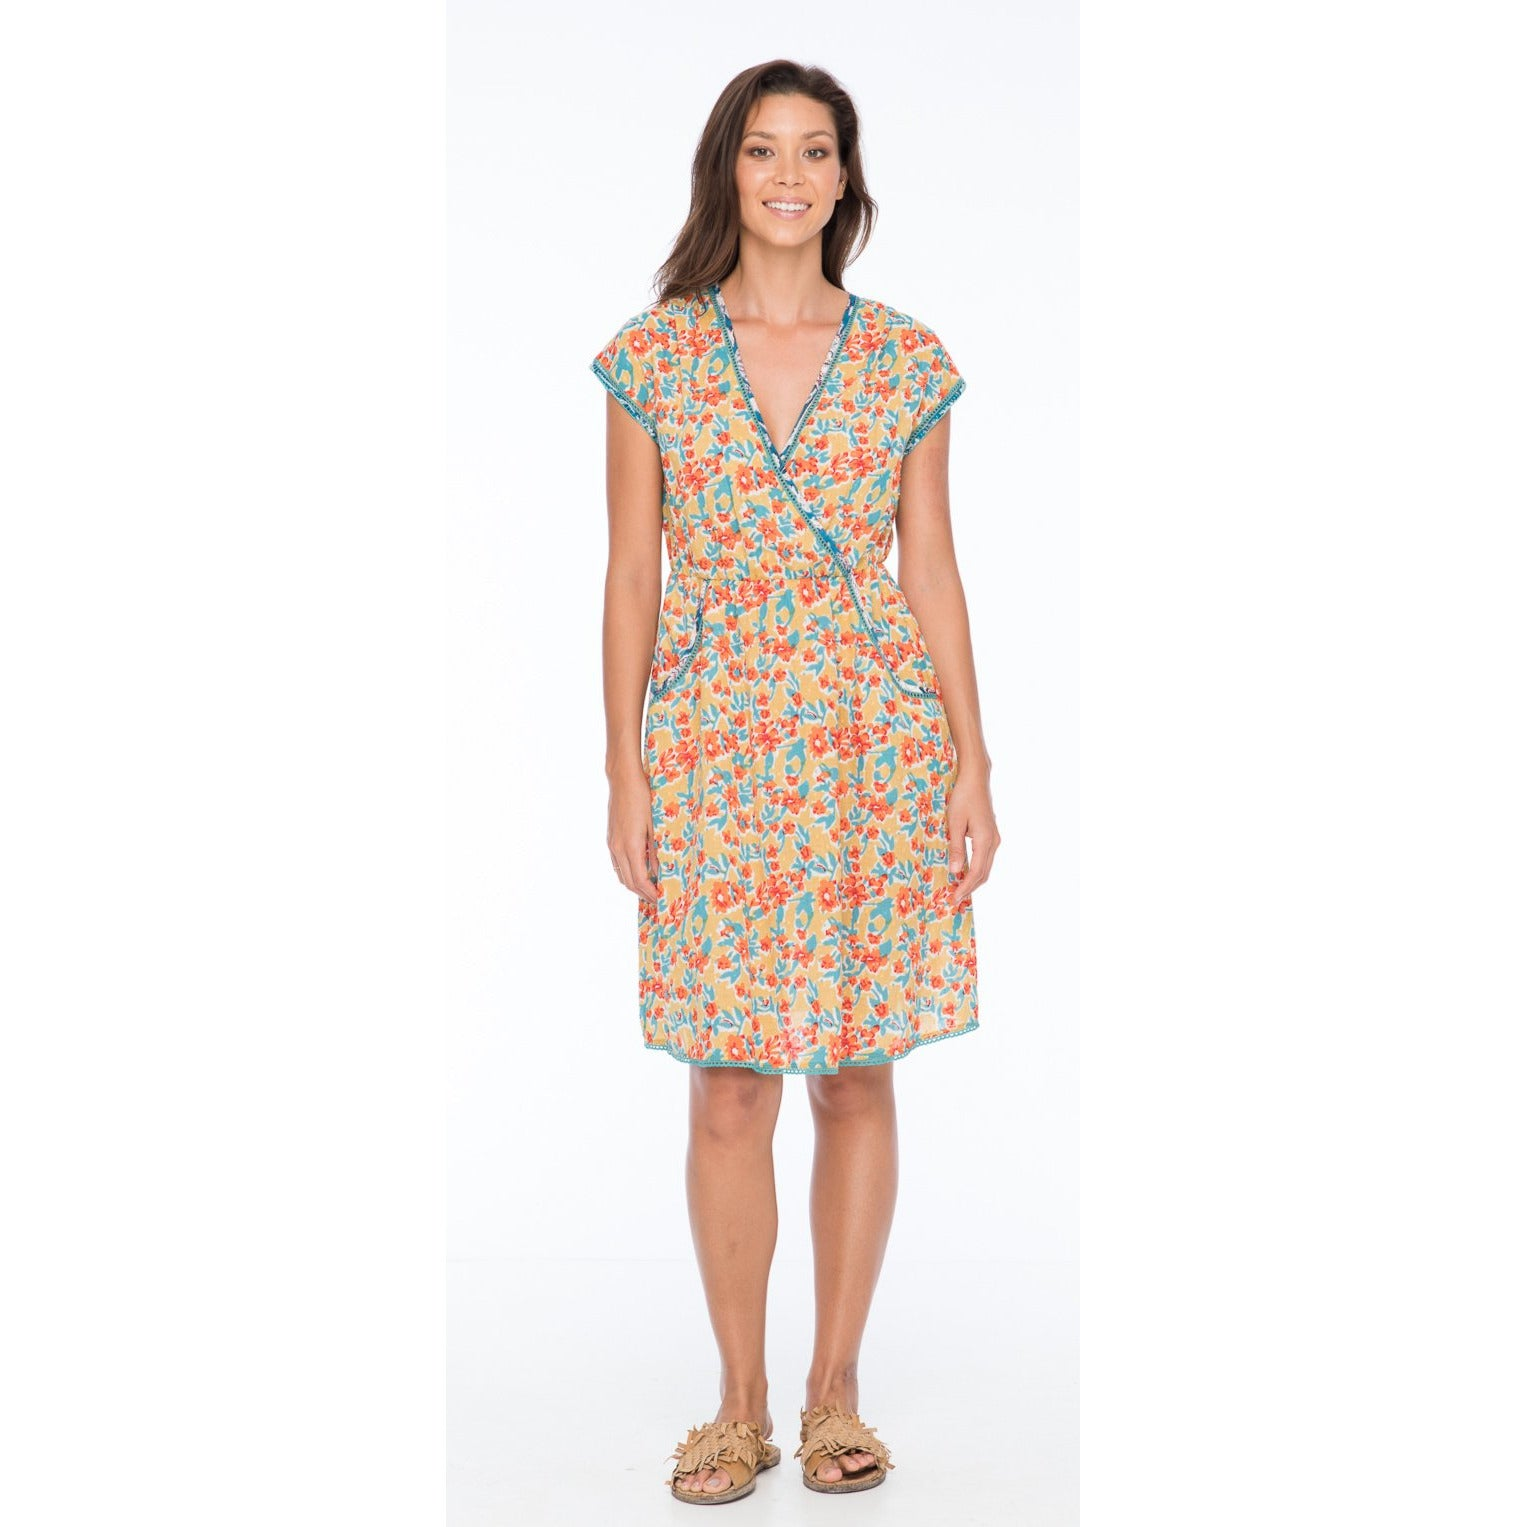 Boom Shankar Betti Dress in Sweet-pea Block Print